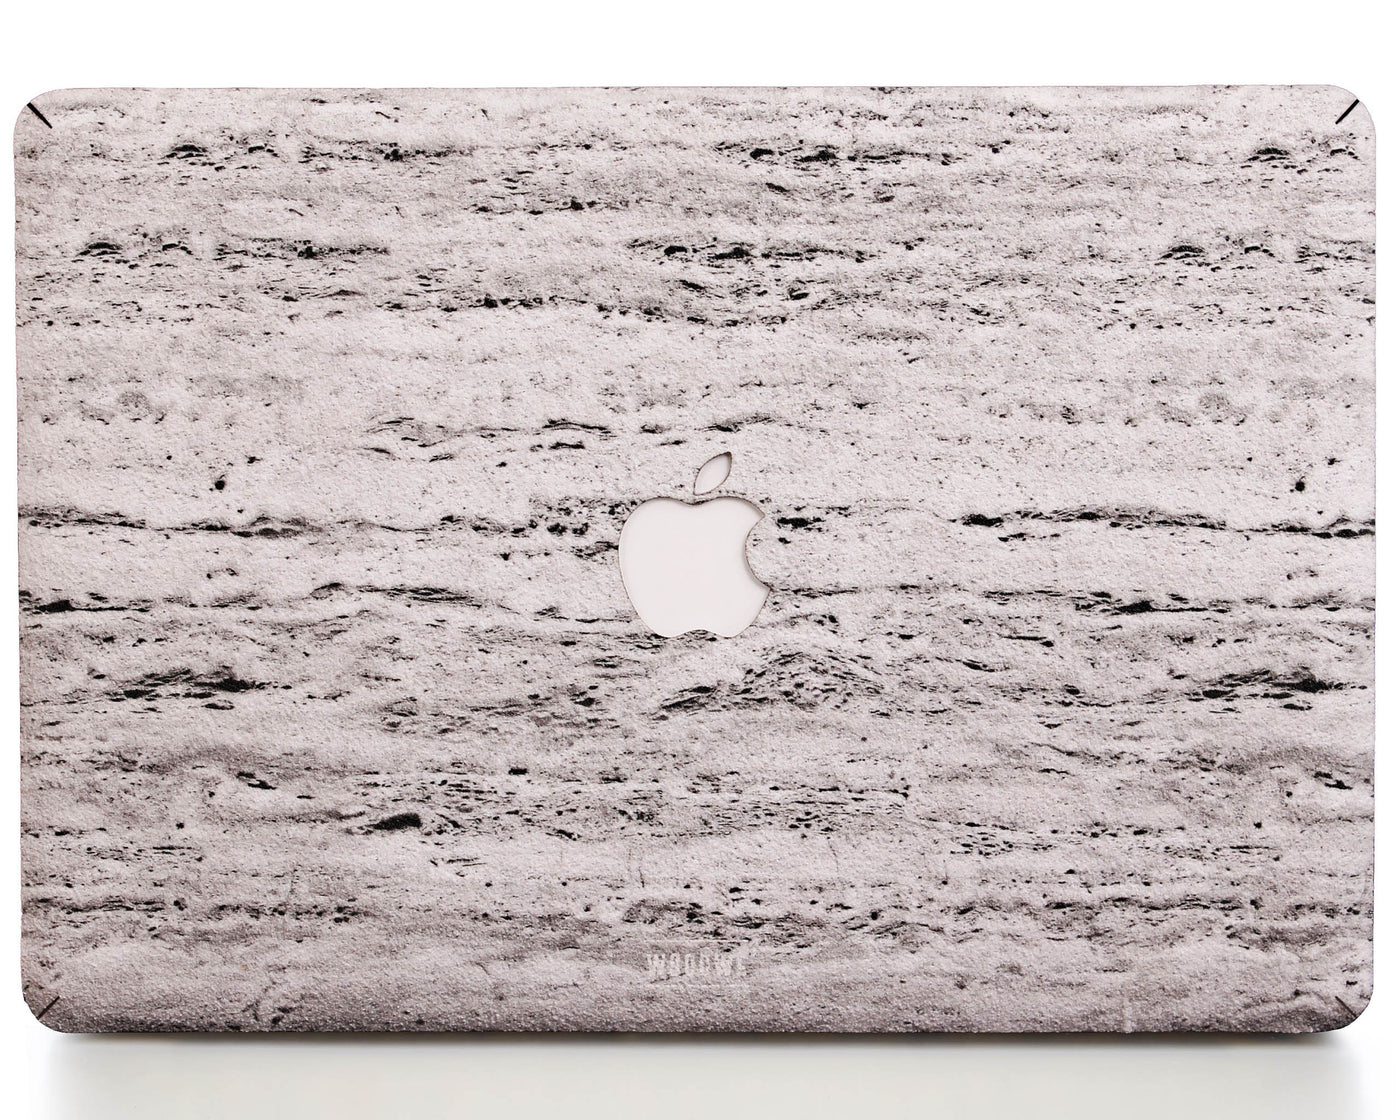 MACBOOK SAND COLLECTION